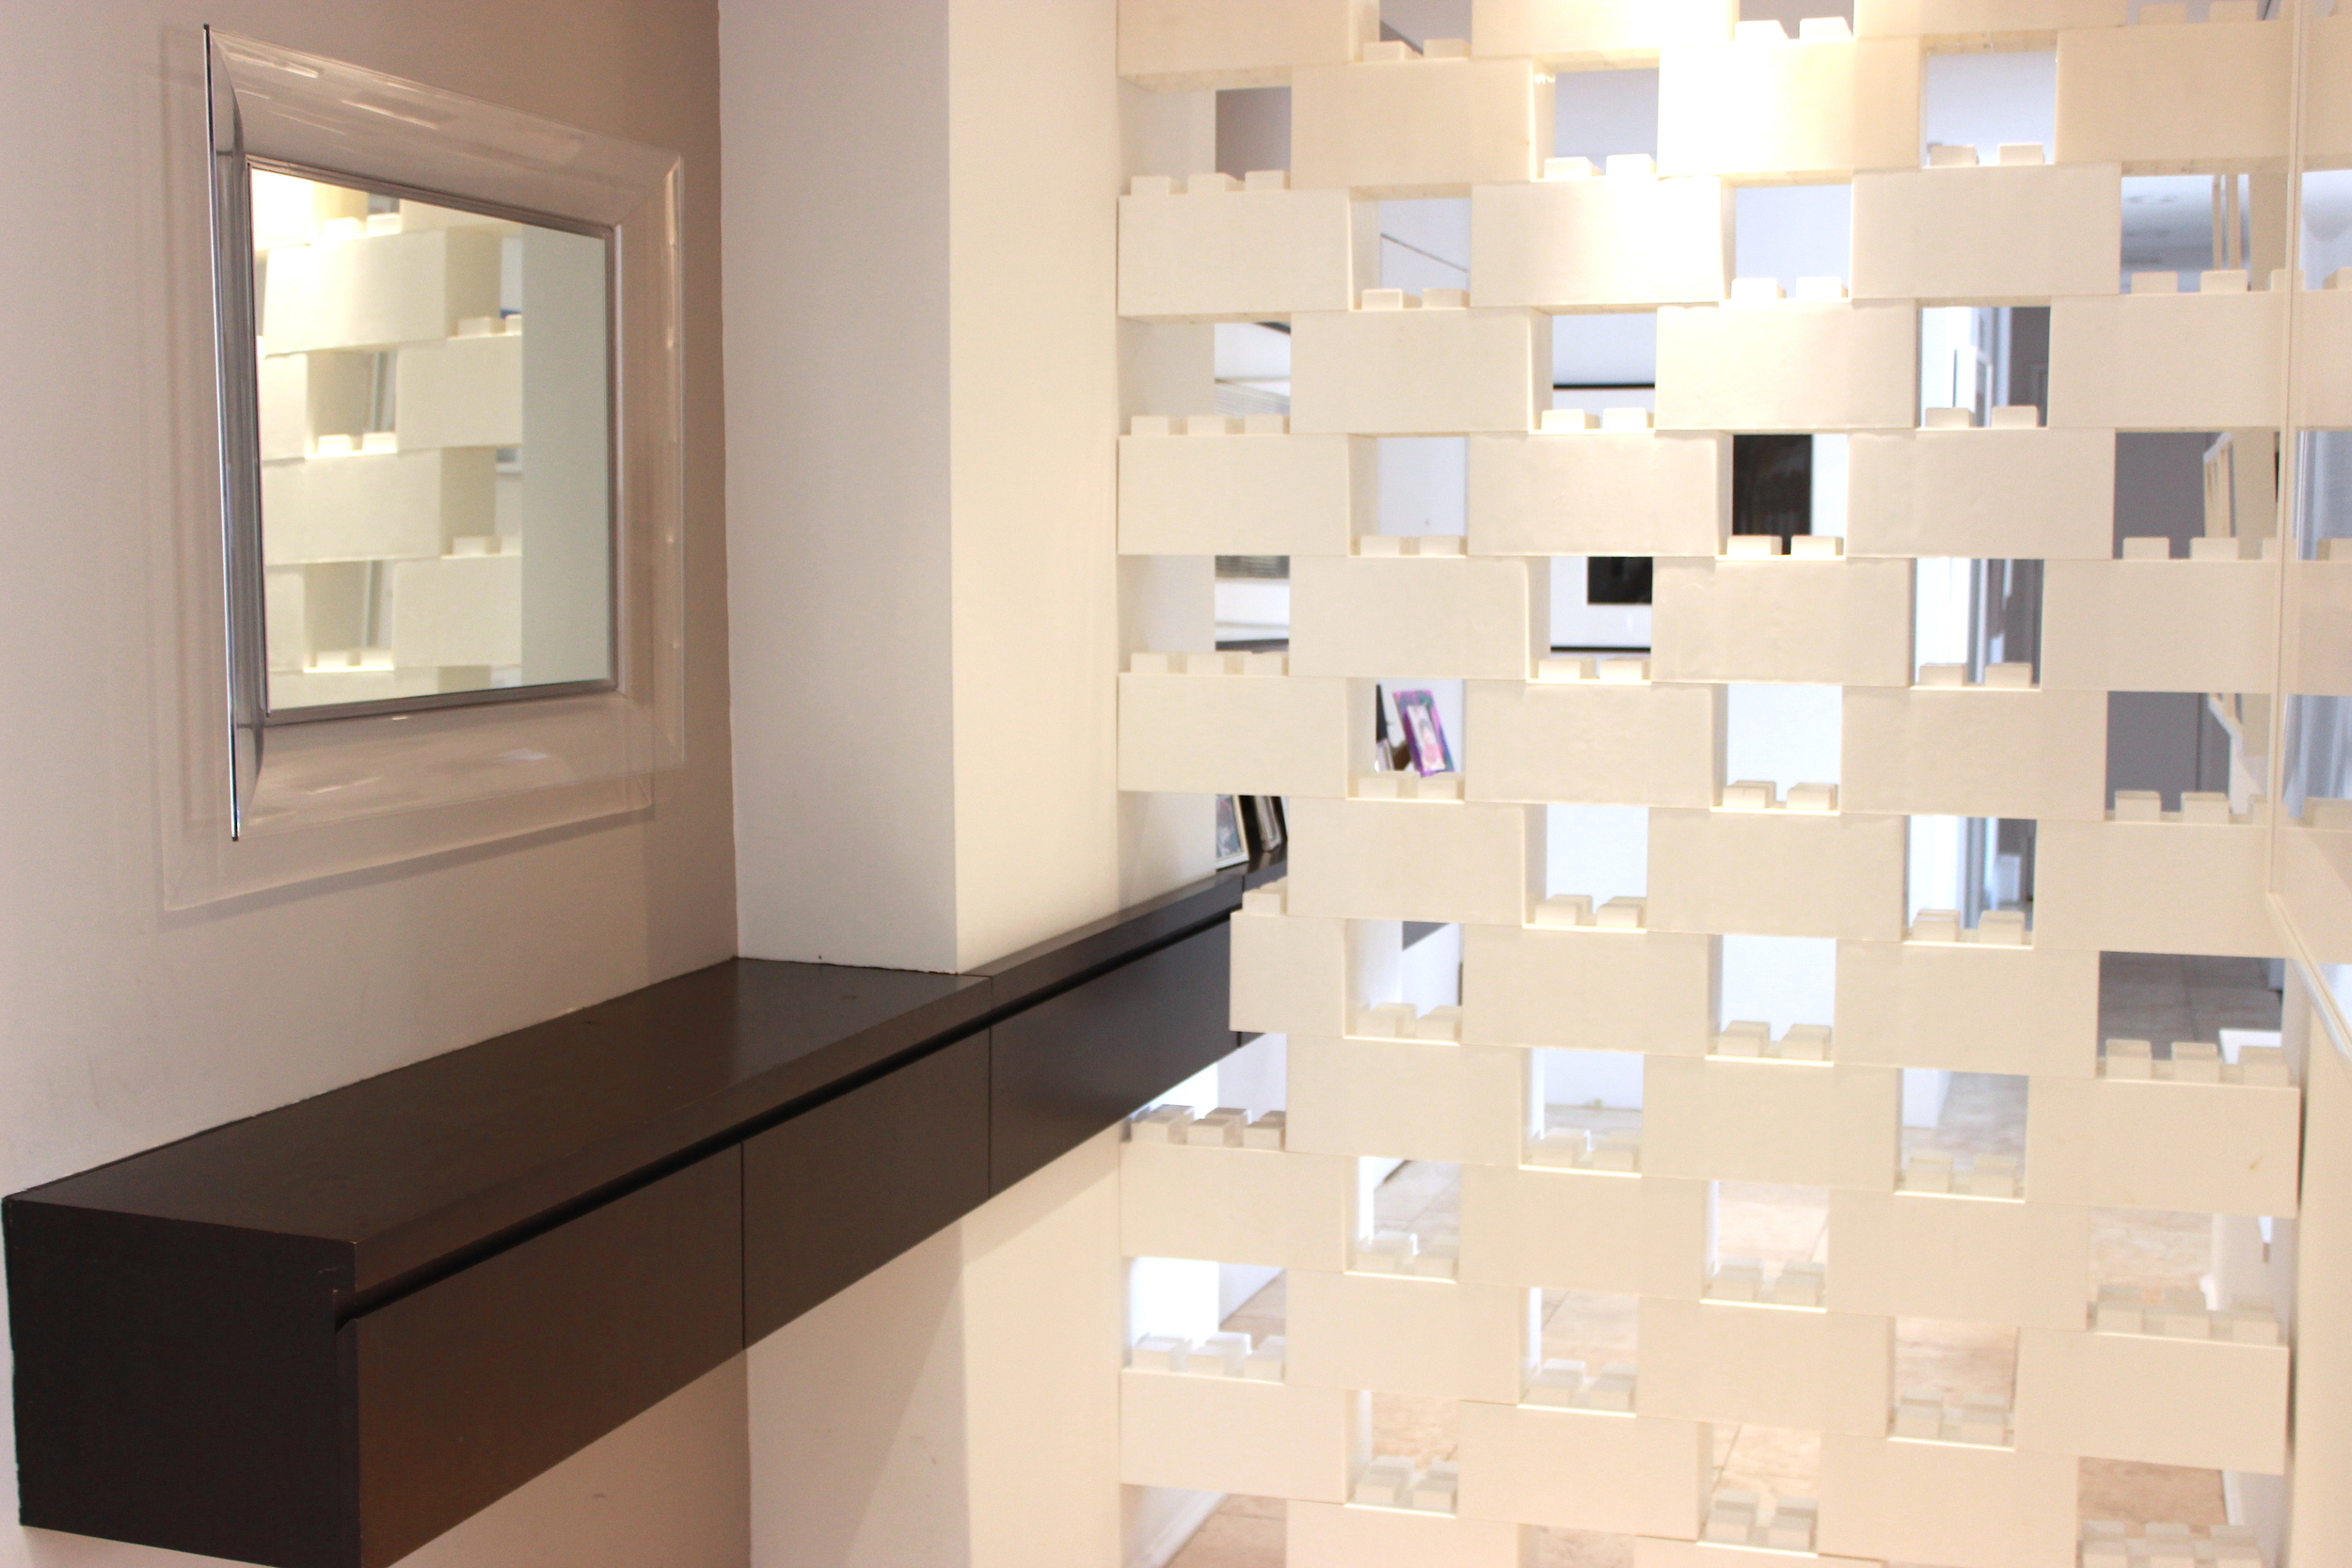 Easy To Build Modular Walls And Room Dividers For Home And Industrial Use Everblock Systems